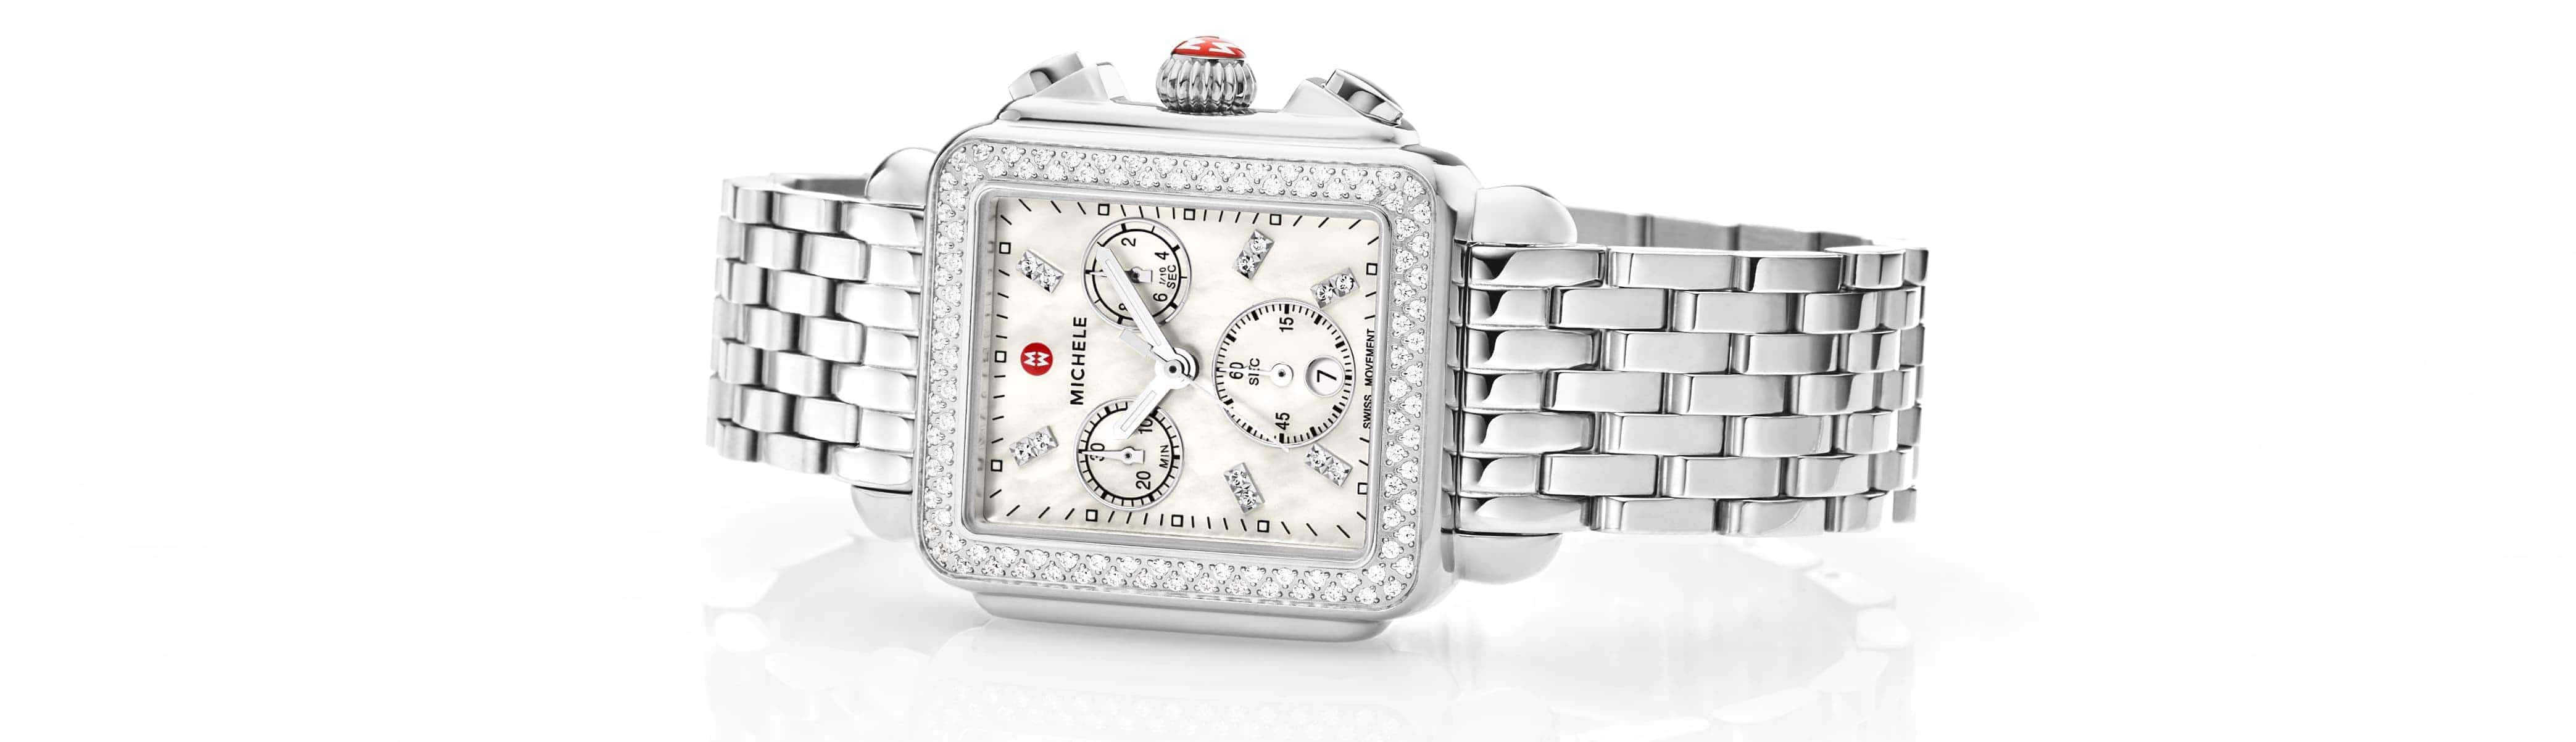 Sophisticated woman wearing the Deco watch while walking on the beach.